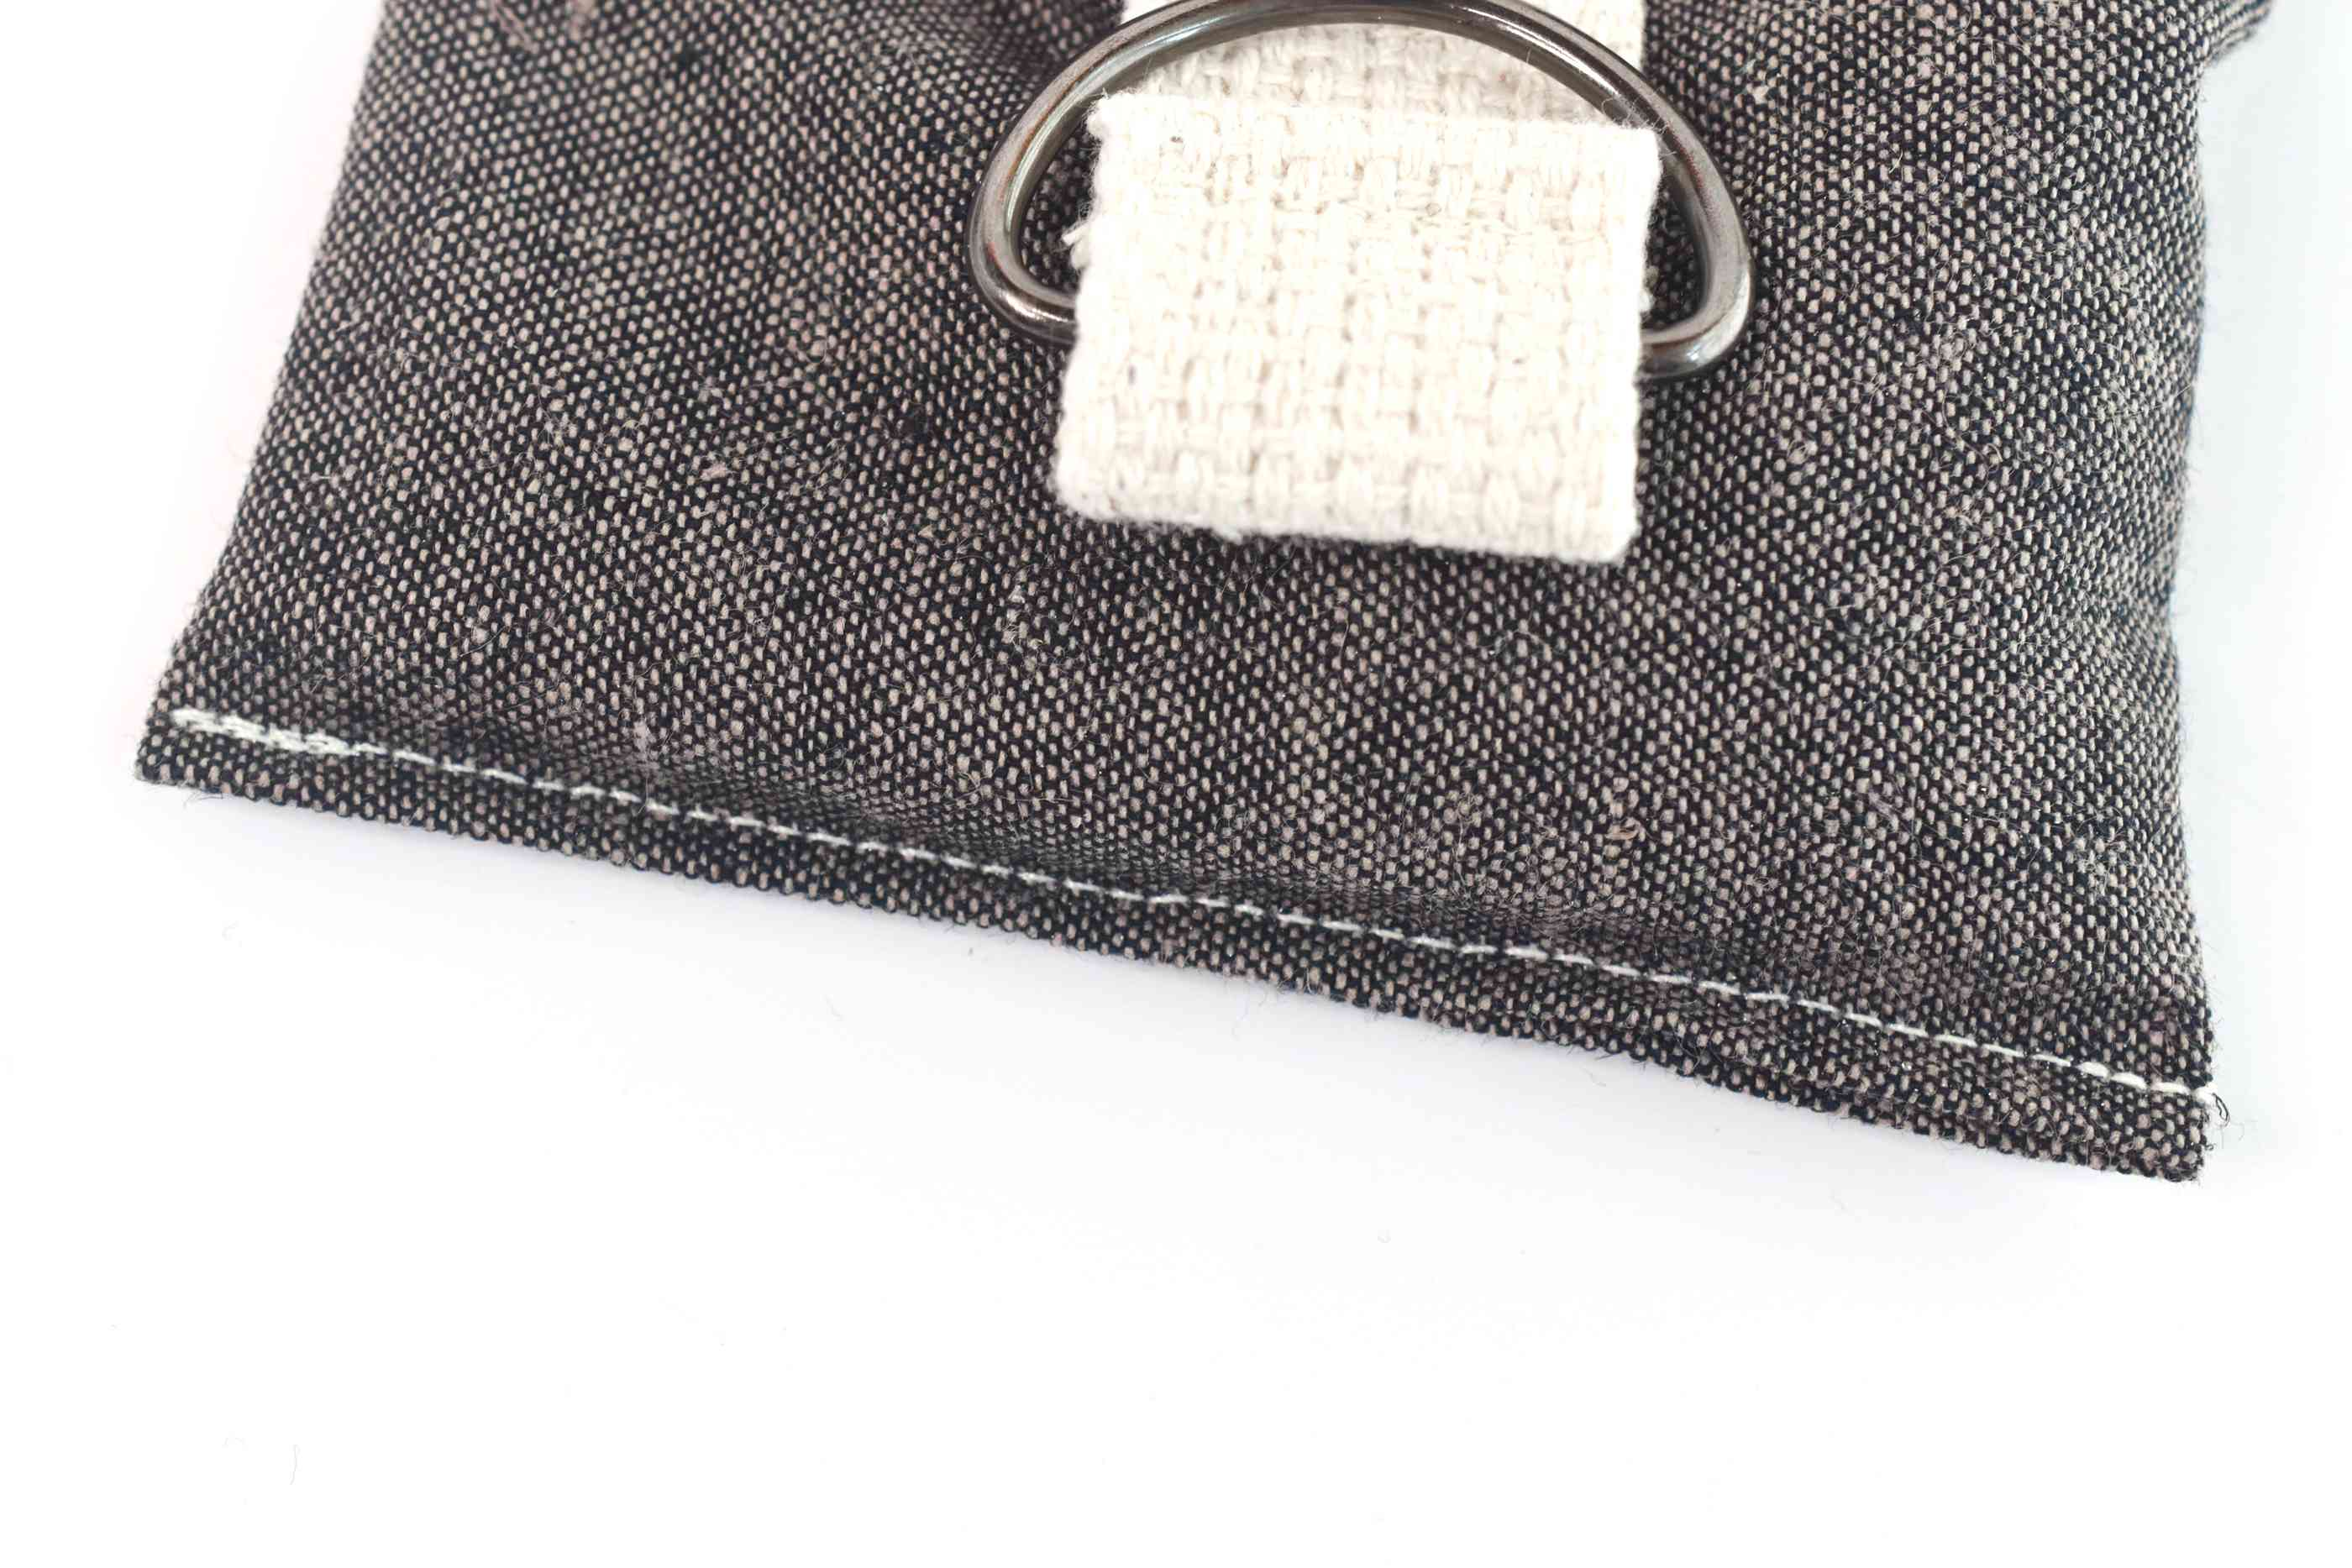 Sew the End of the Wrist/Ankle Weight Closed